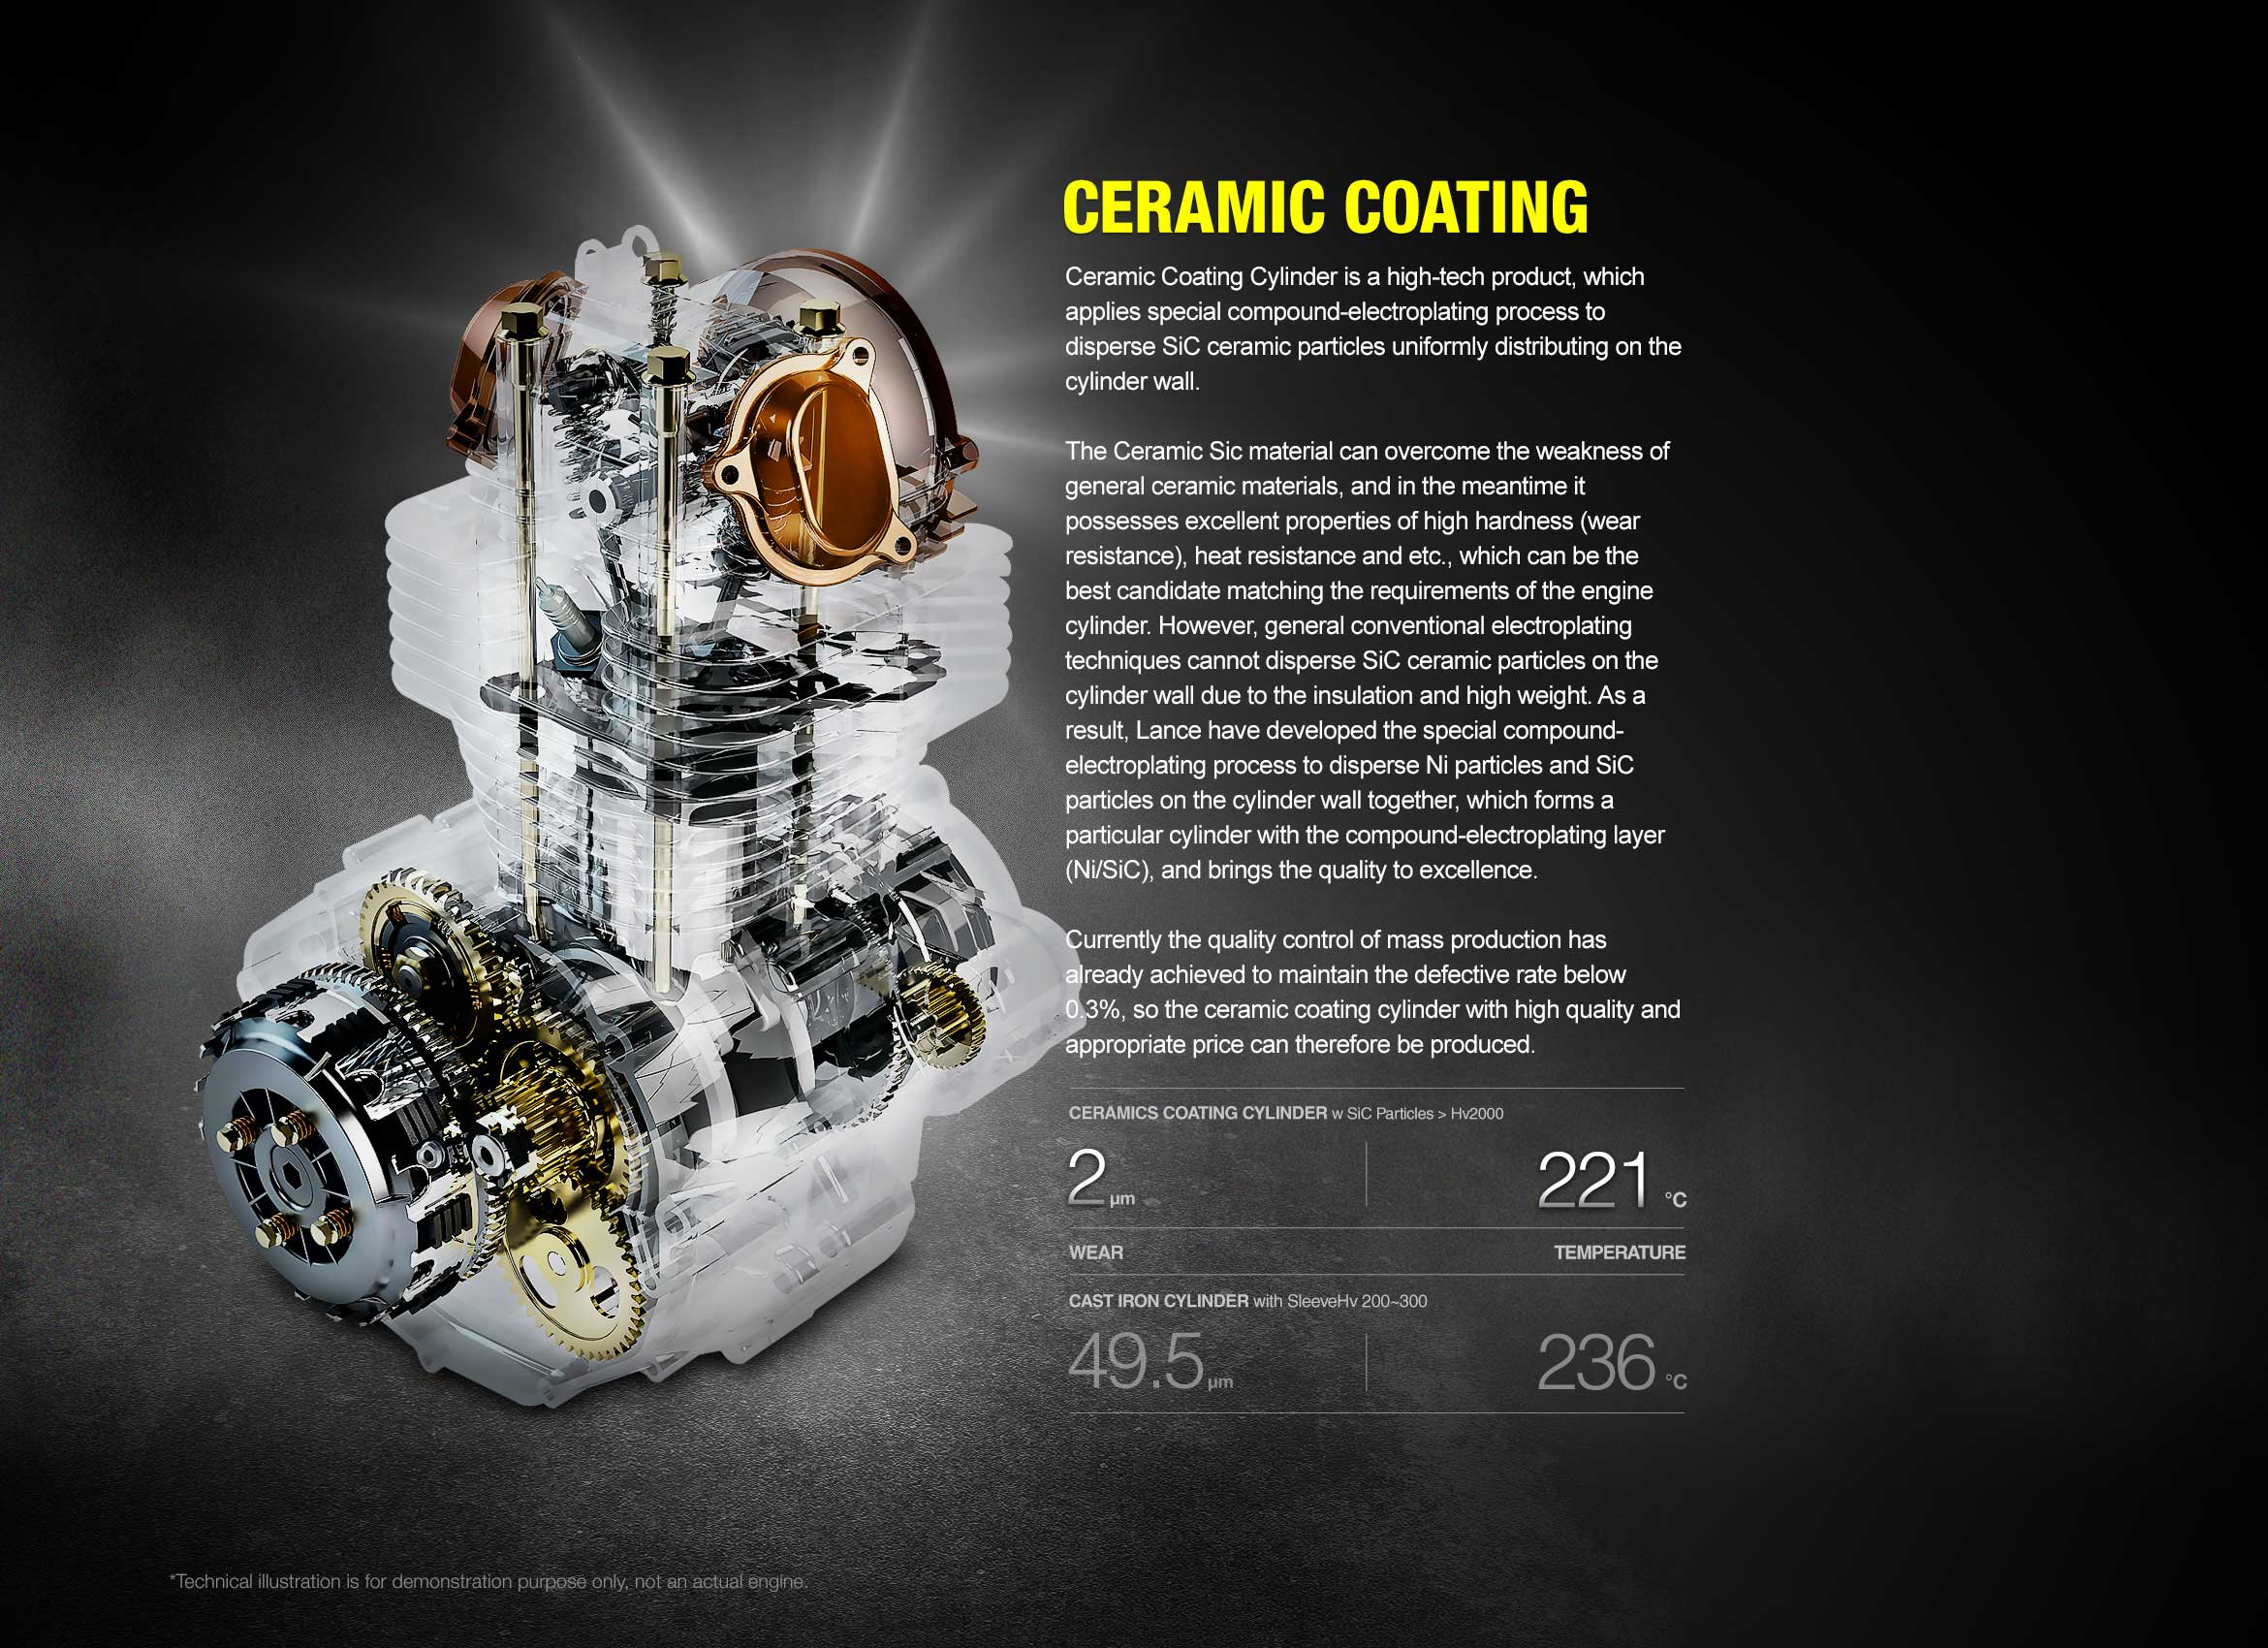 Ceramic Coating Cylinder